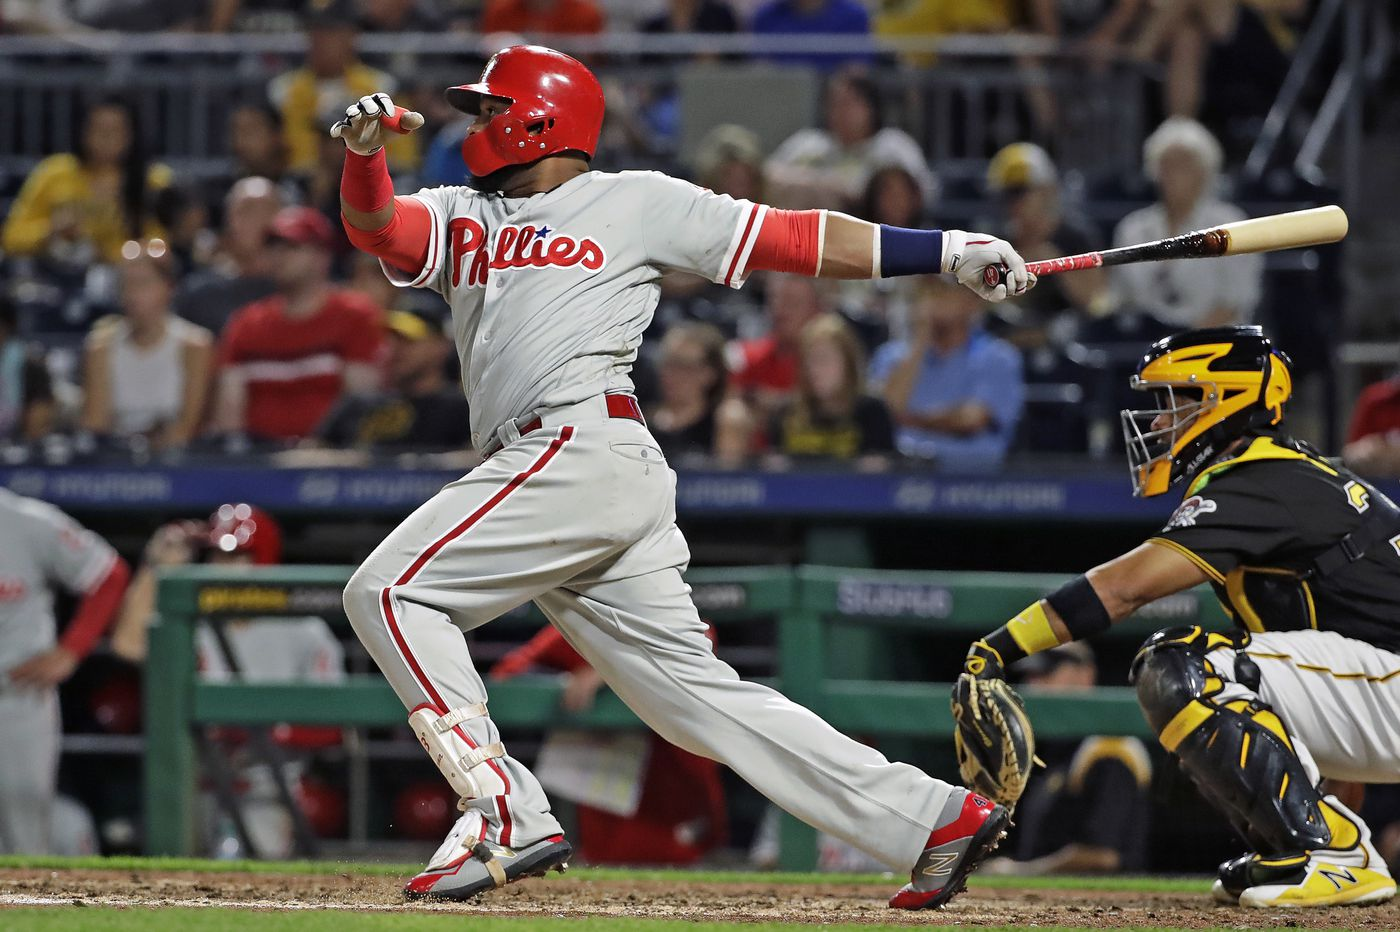 Phillies climb atop NL East with blowout win over Pirates